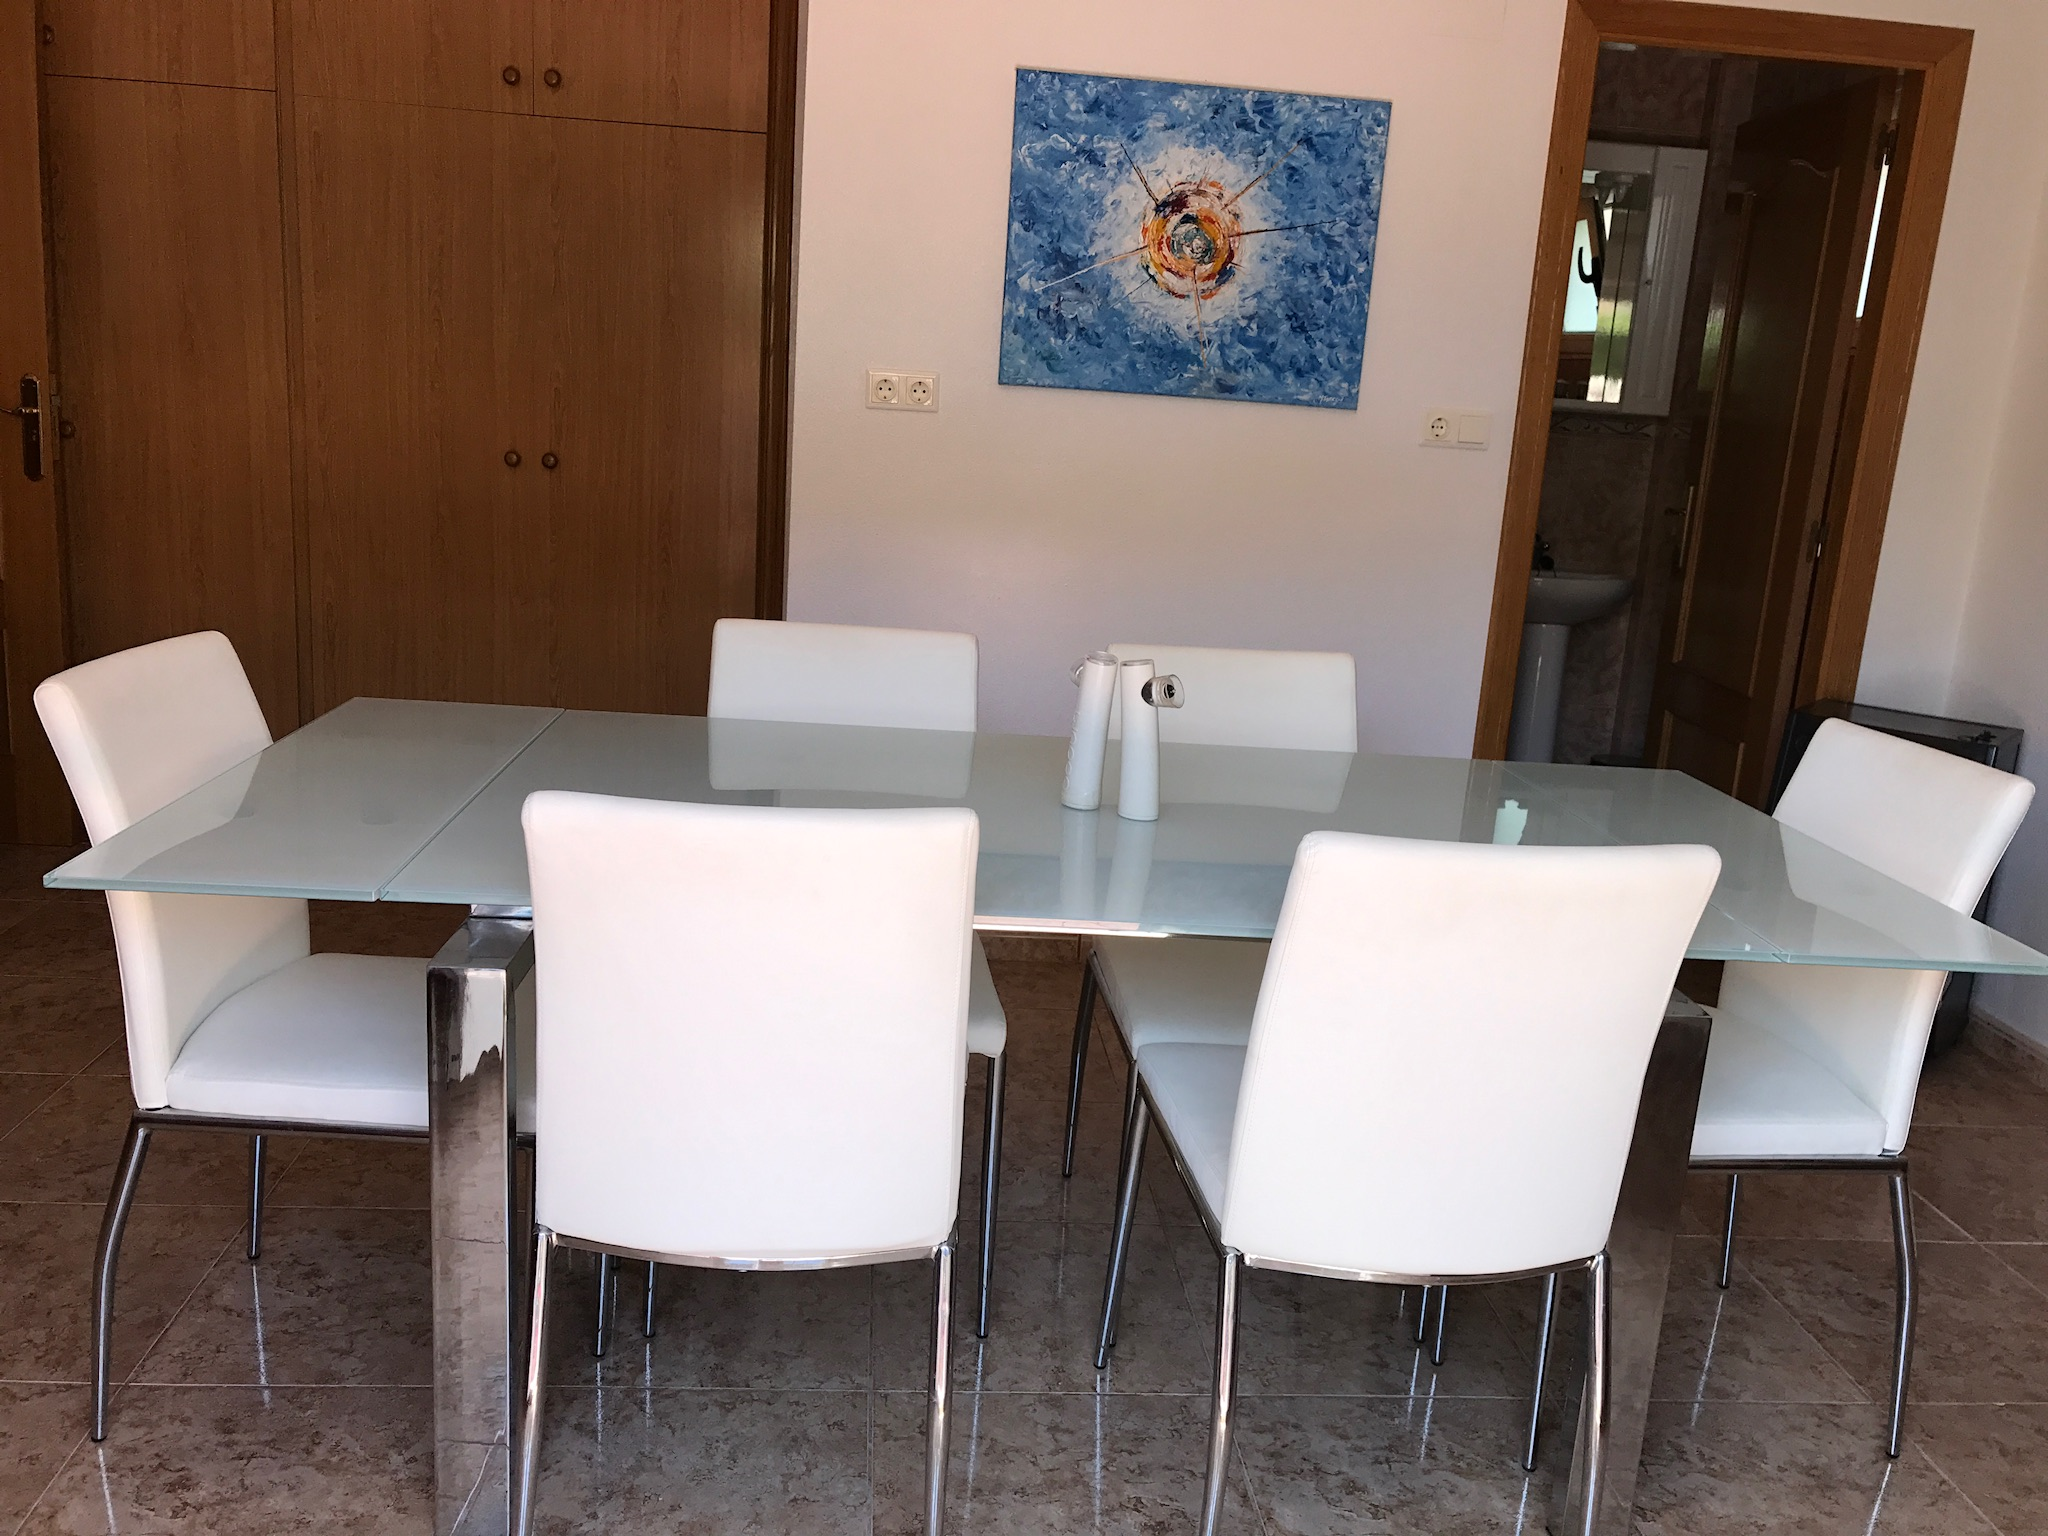 For Sale Dining Table And Chairs Buy And Sell Items In